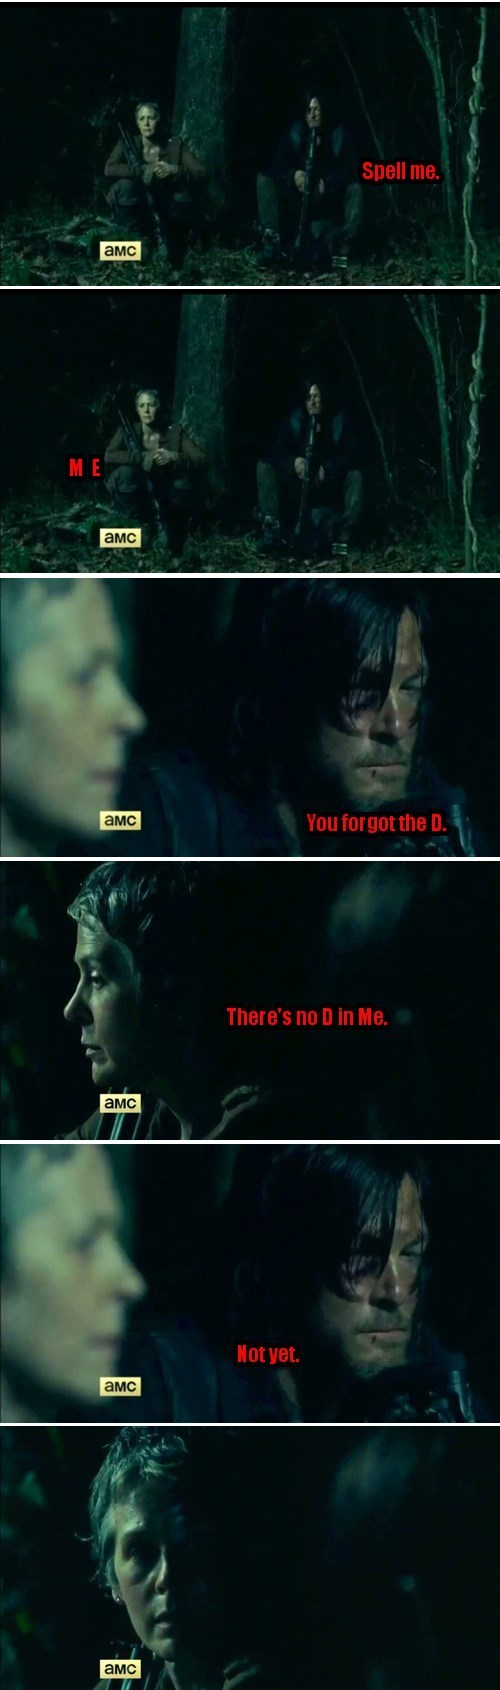 daryl dixon The Walking Dead carol peletier - 8353304064